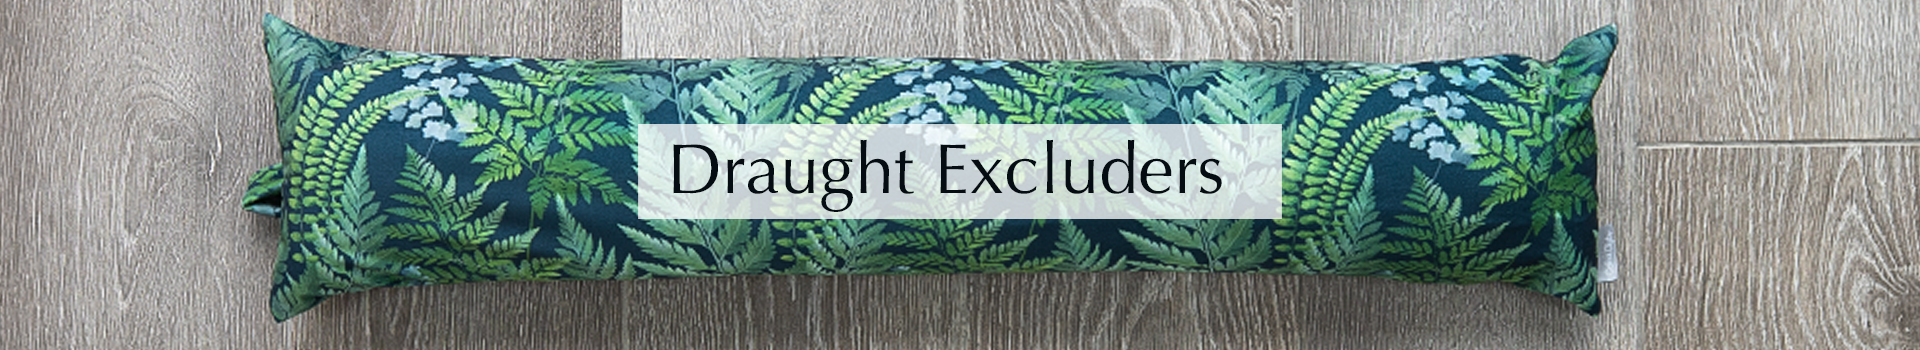 draught-excluders-copy-2.png